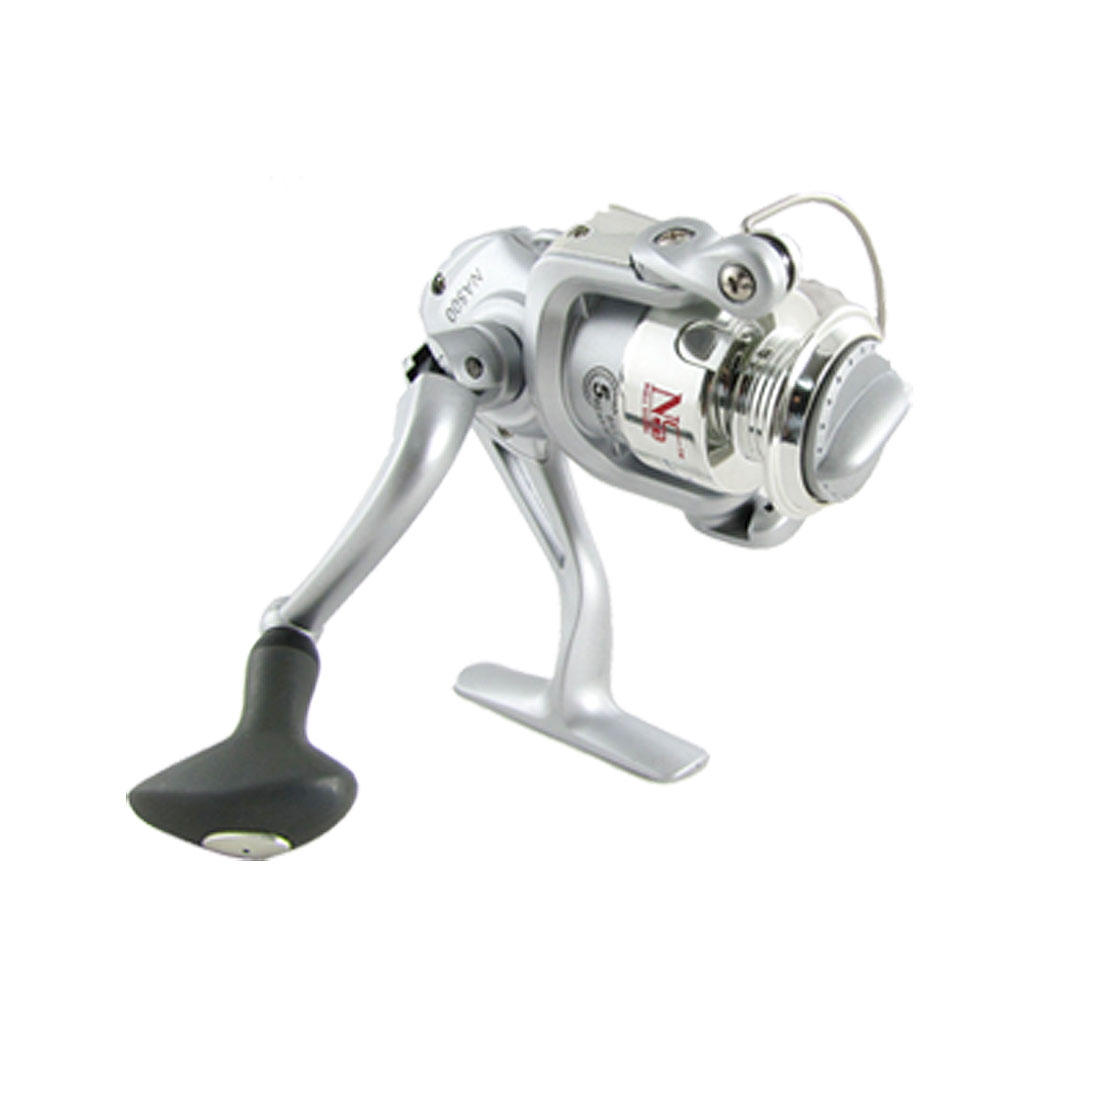 Silver Tone Gear Ratio 5.1:1 Fishing Spinning Reel Roller